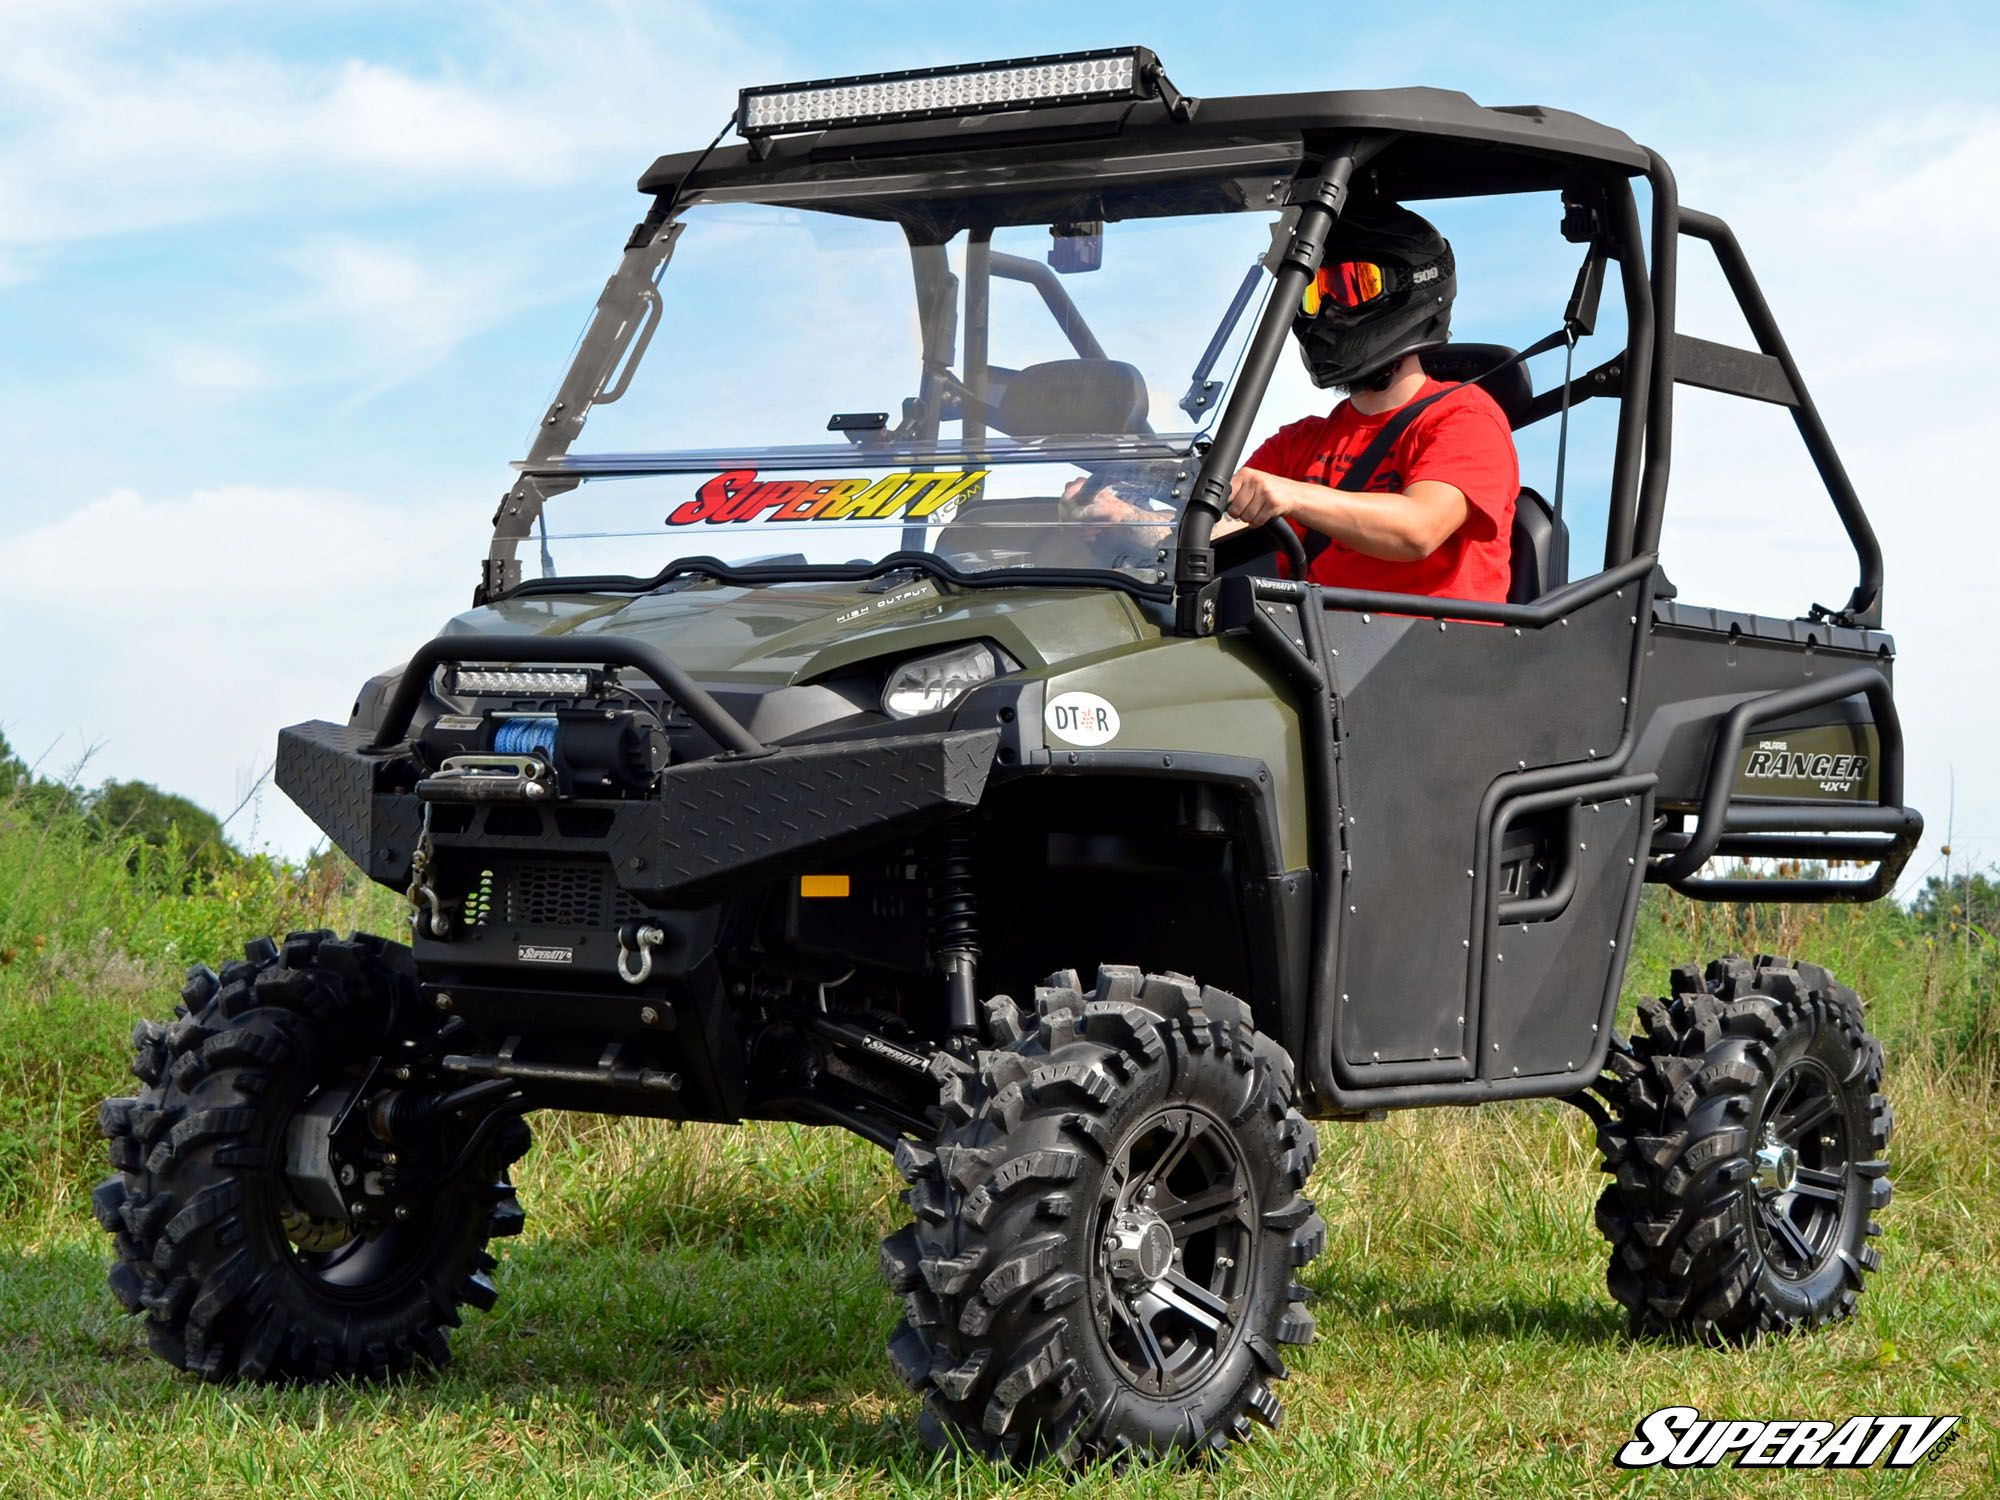 Superatv Polaris Ranger Fullsize 800 Portal Gear Lifts